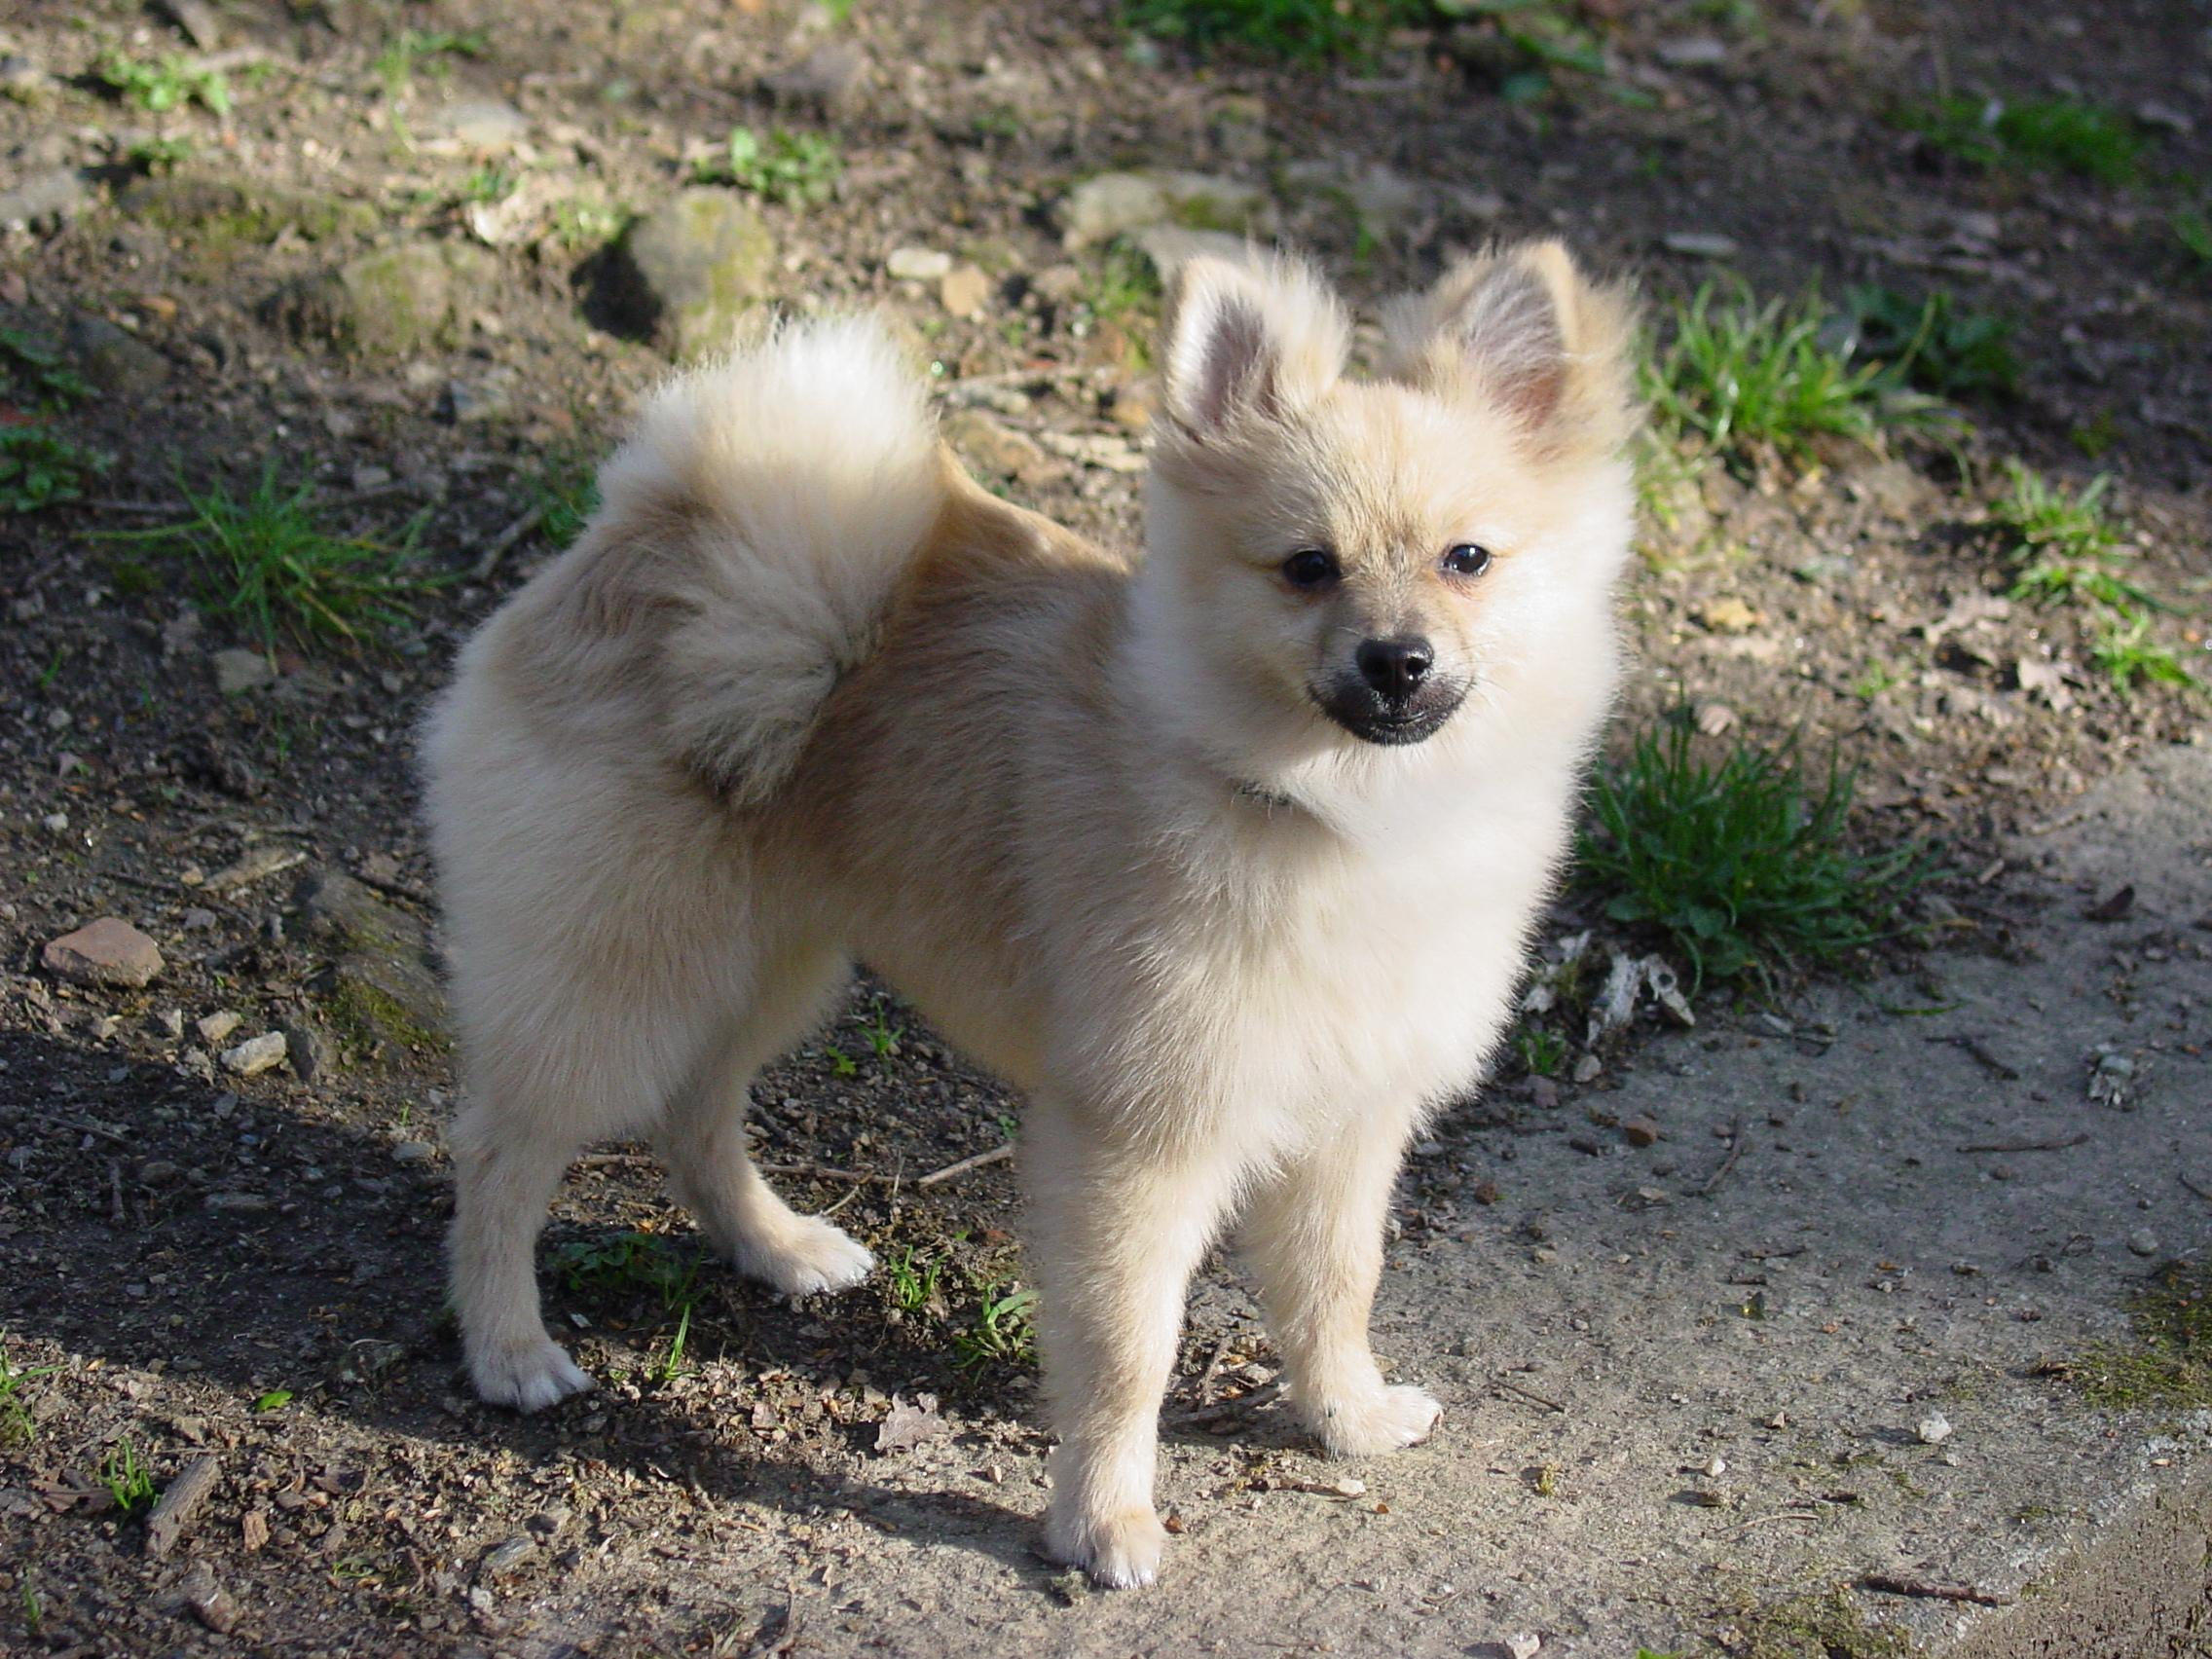 ... have Pomeranian dogs, you can make use of the following grooming tips